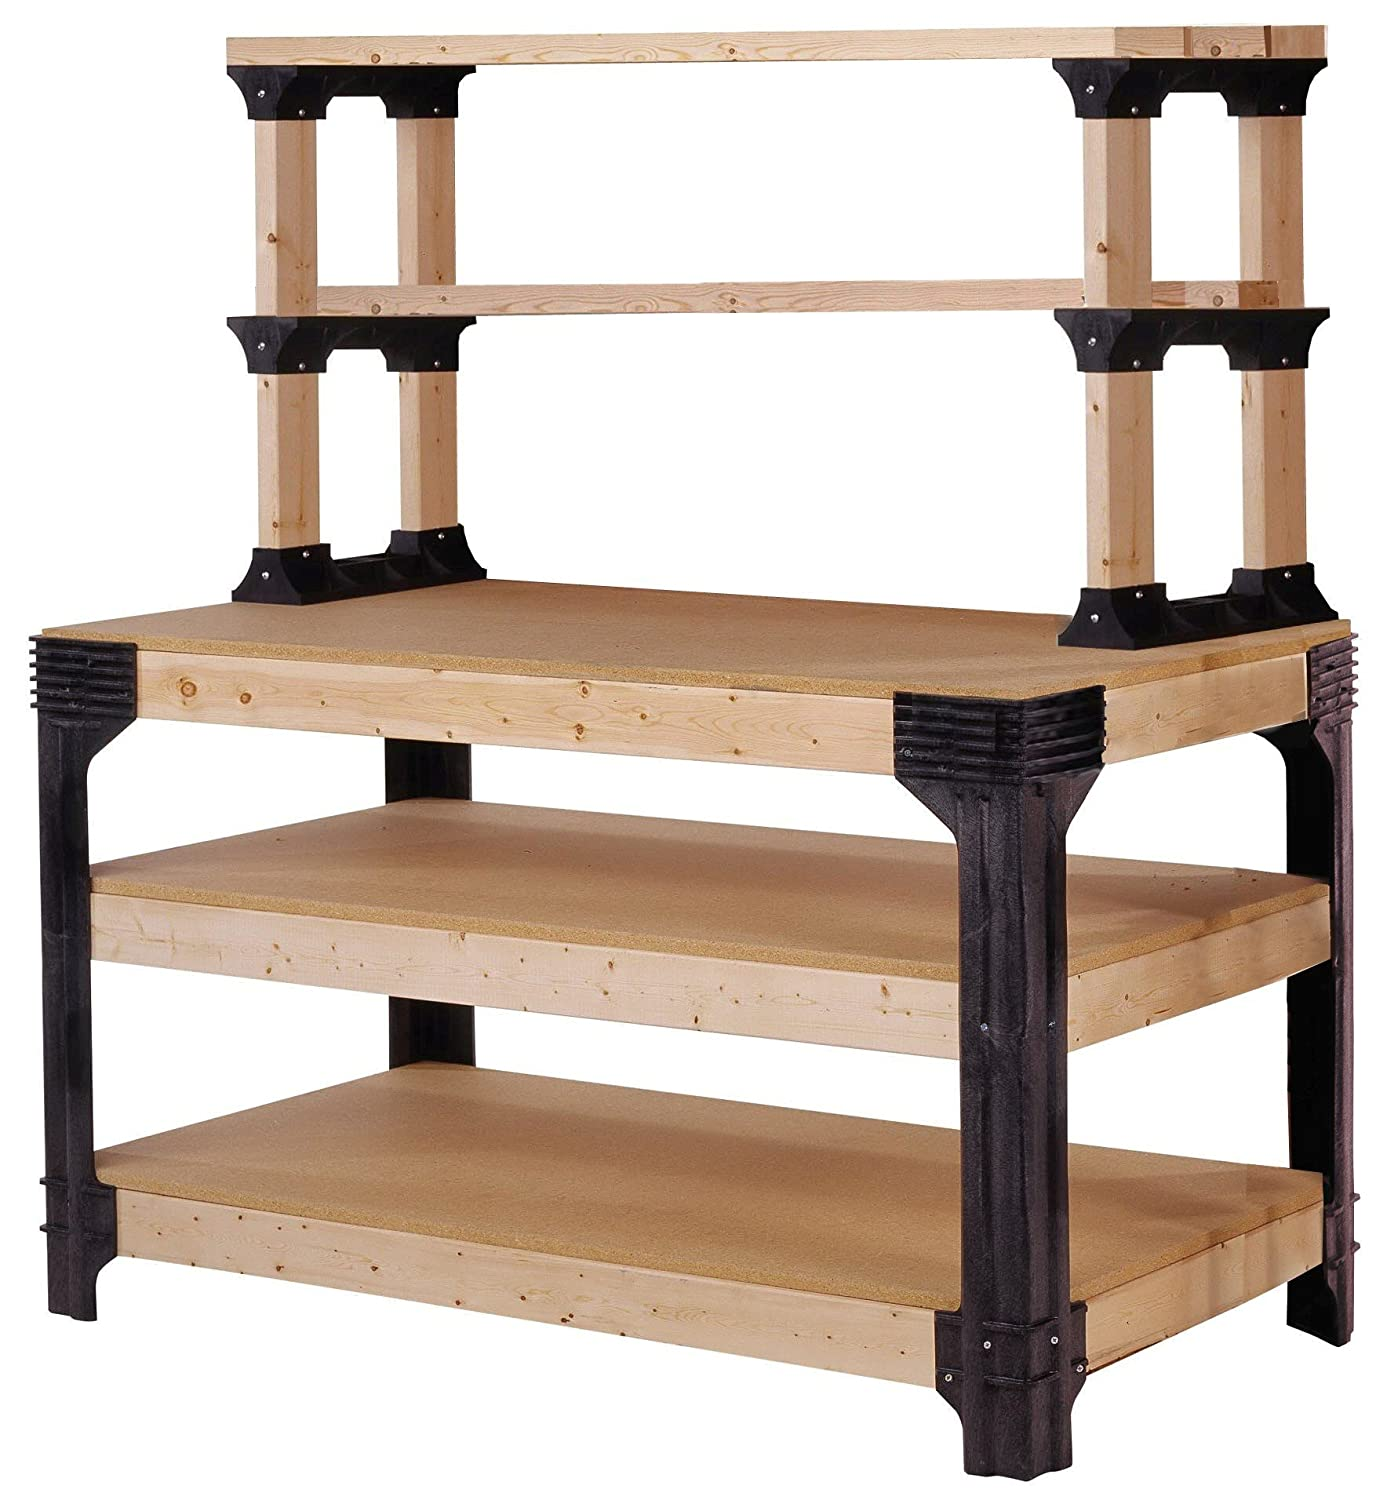 Excellent 2X4Basics 90164 Custom Work Bench And Shelving Storage System Black Andrewgaddart Wooden Chair Designs For Living Room Andrewgaddartcom